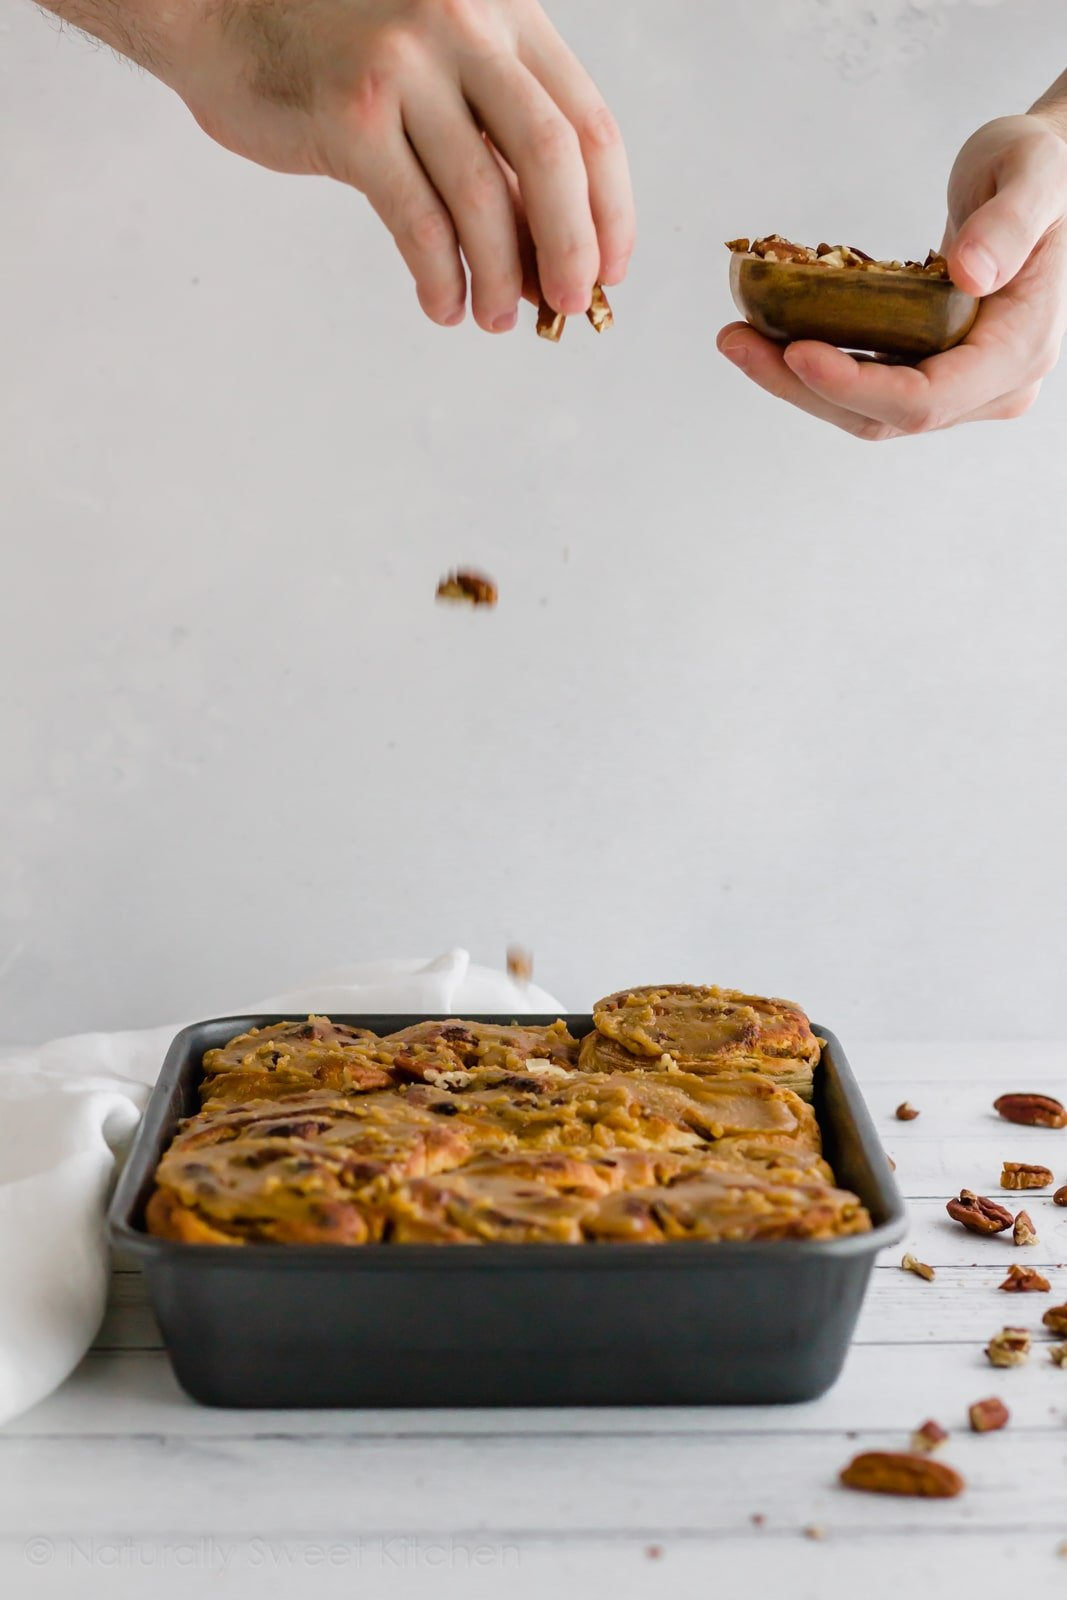 Easy pecan pumpkin cinnamon rolls! The best fall baking recipe for brunch, snack, or dessert. Top with a quick, sugar-free caramel sauce for that little bit extra. Get the recipe and more refined sugar free desserts at naturallysweetkitchen.com #naturallysweetkitchen #sugarfree #pumpkin #cinnamonrolls #pecans #caramelsauce